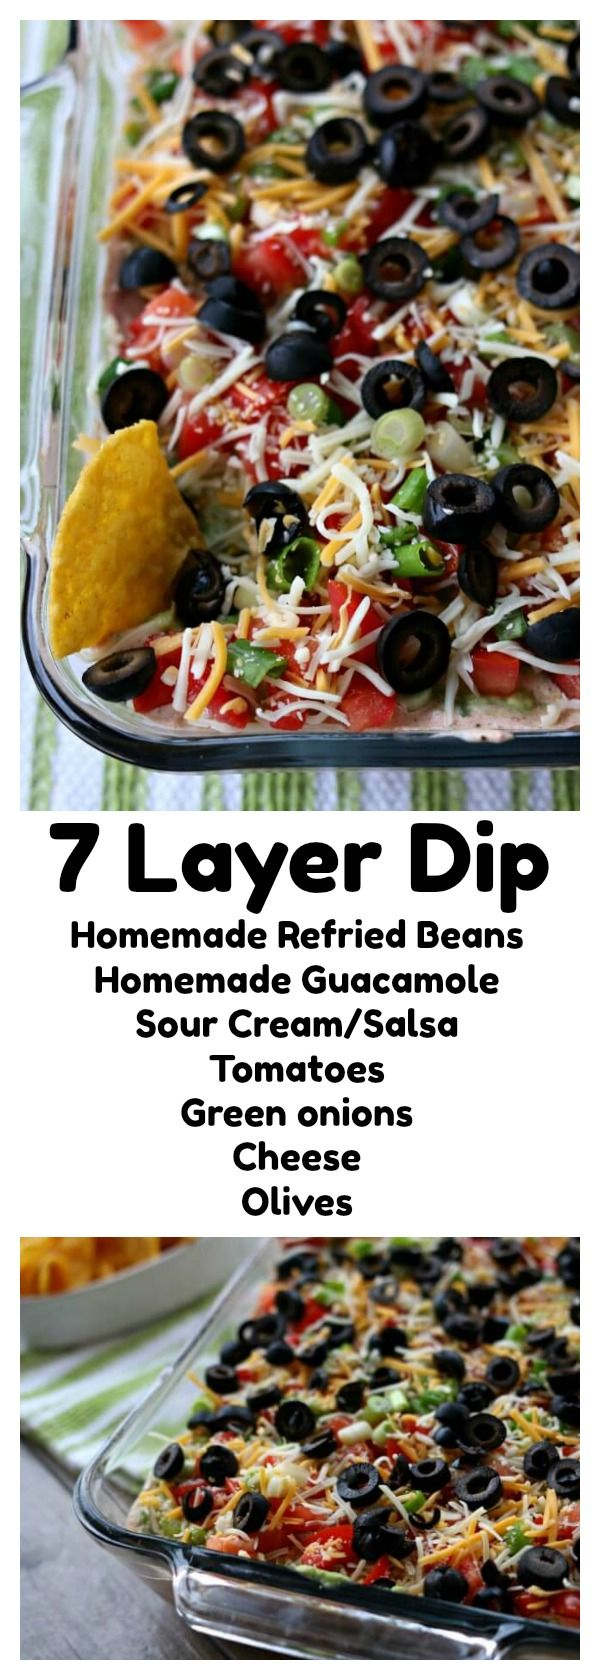 7 Layer Dip–this is the best 7 layer dip I have ever eaten! It starts with a layer of perfectly seasoned homemade refried beans (which you can make in the Instant Pot or slow cooker), then a layer of sour cream mixed with taco seasoning and salsa, next a layer of smashed avocados seasoned with lime juice and finally it's topped with diced tomatoes, green onions, cheese and olives. Every layer comes together in perfect harmony on top of a tortilla chip and then popped into your hungry mouth.